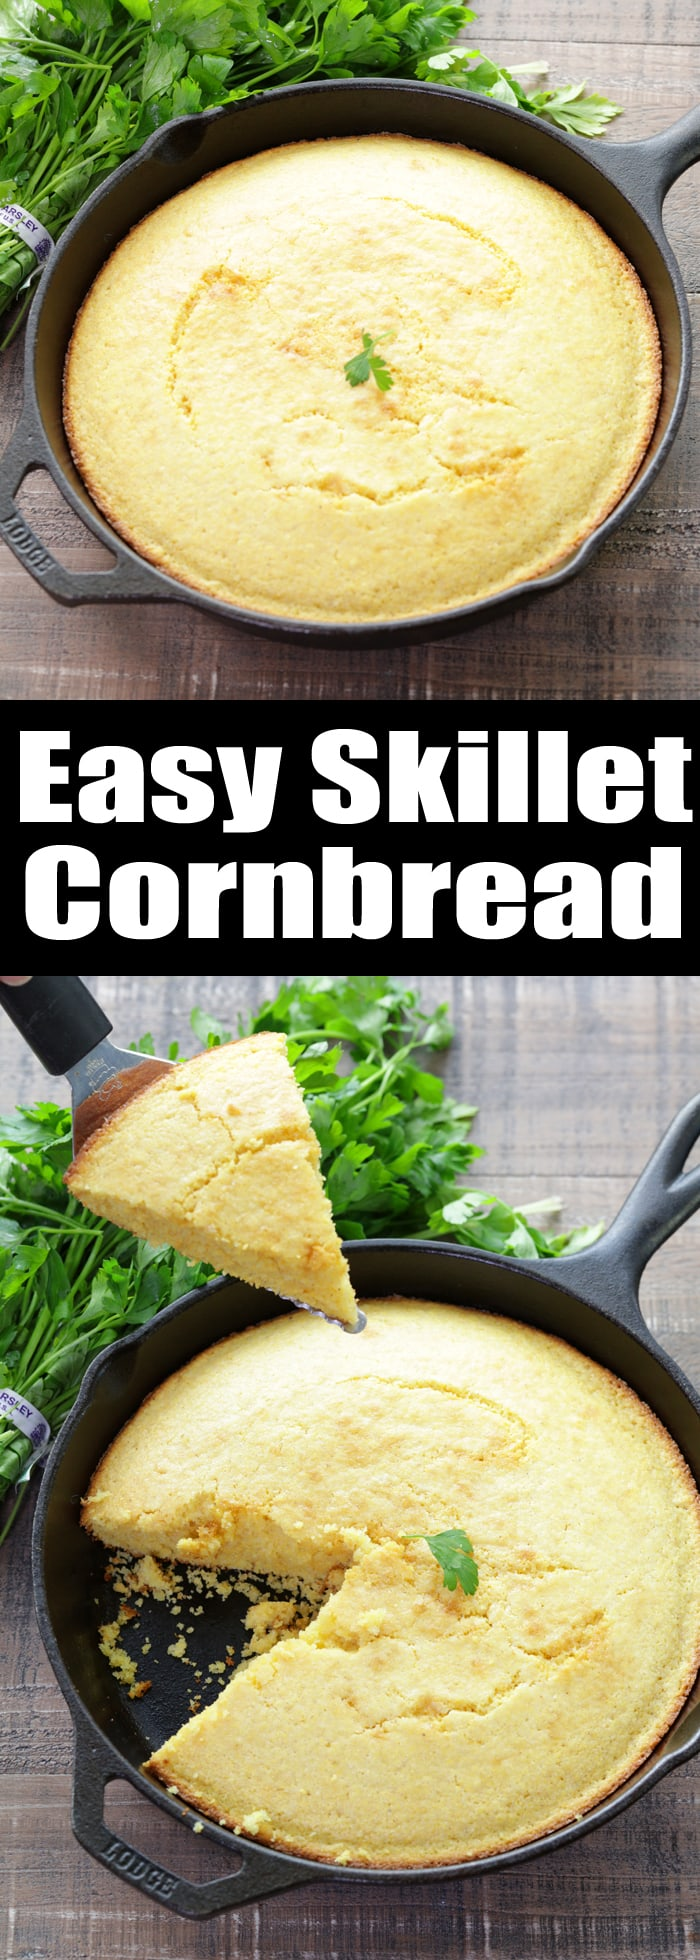 This cowboy Western-style Easy Skillet Cornbread is the perfect side for every soup, stew, and chili you make this winter.It takes just minutes to whip up this sweet cornbread and everyone always loves it!